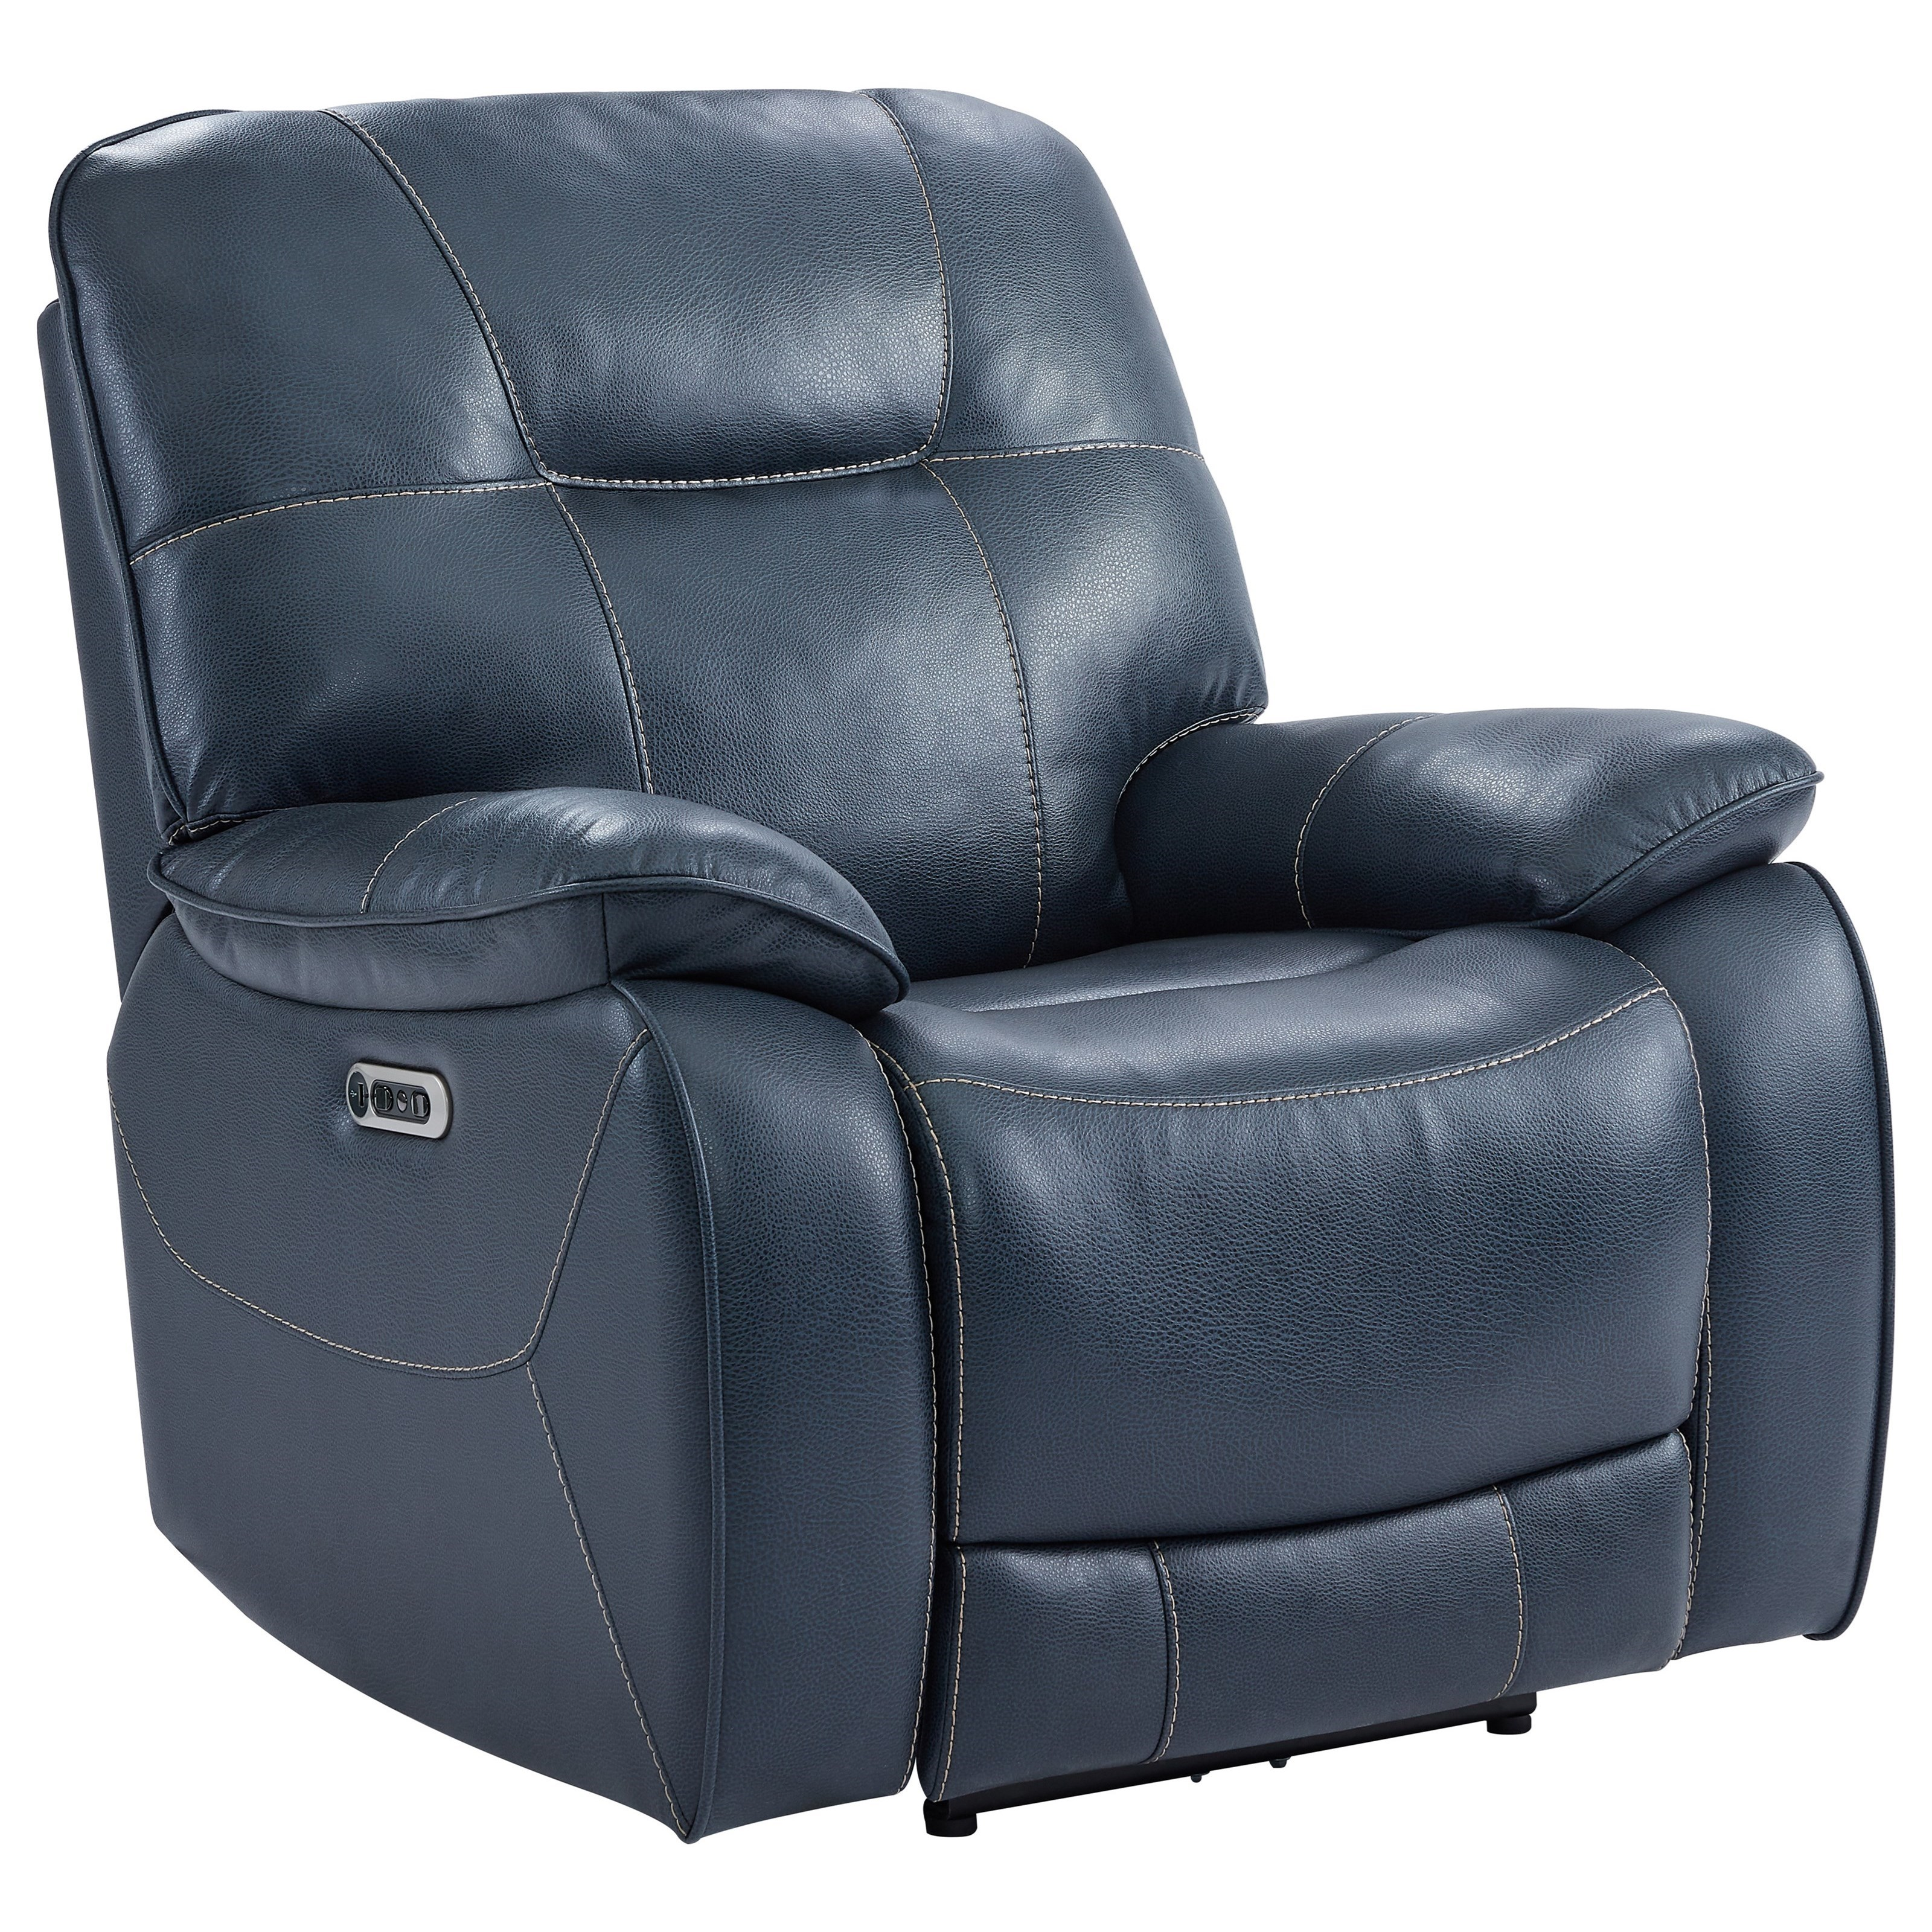 Axel Power Recliner by Parker Living at Simply Home by Lindy's